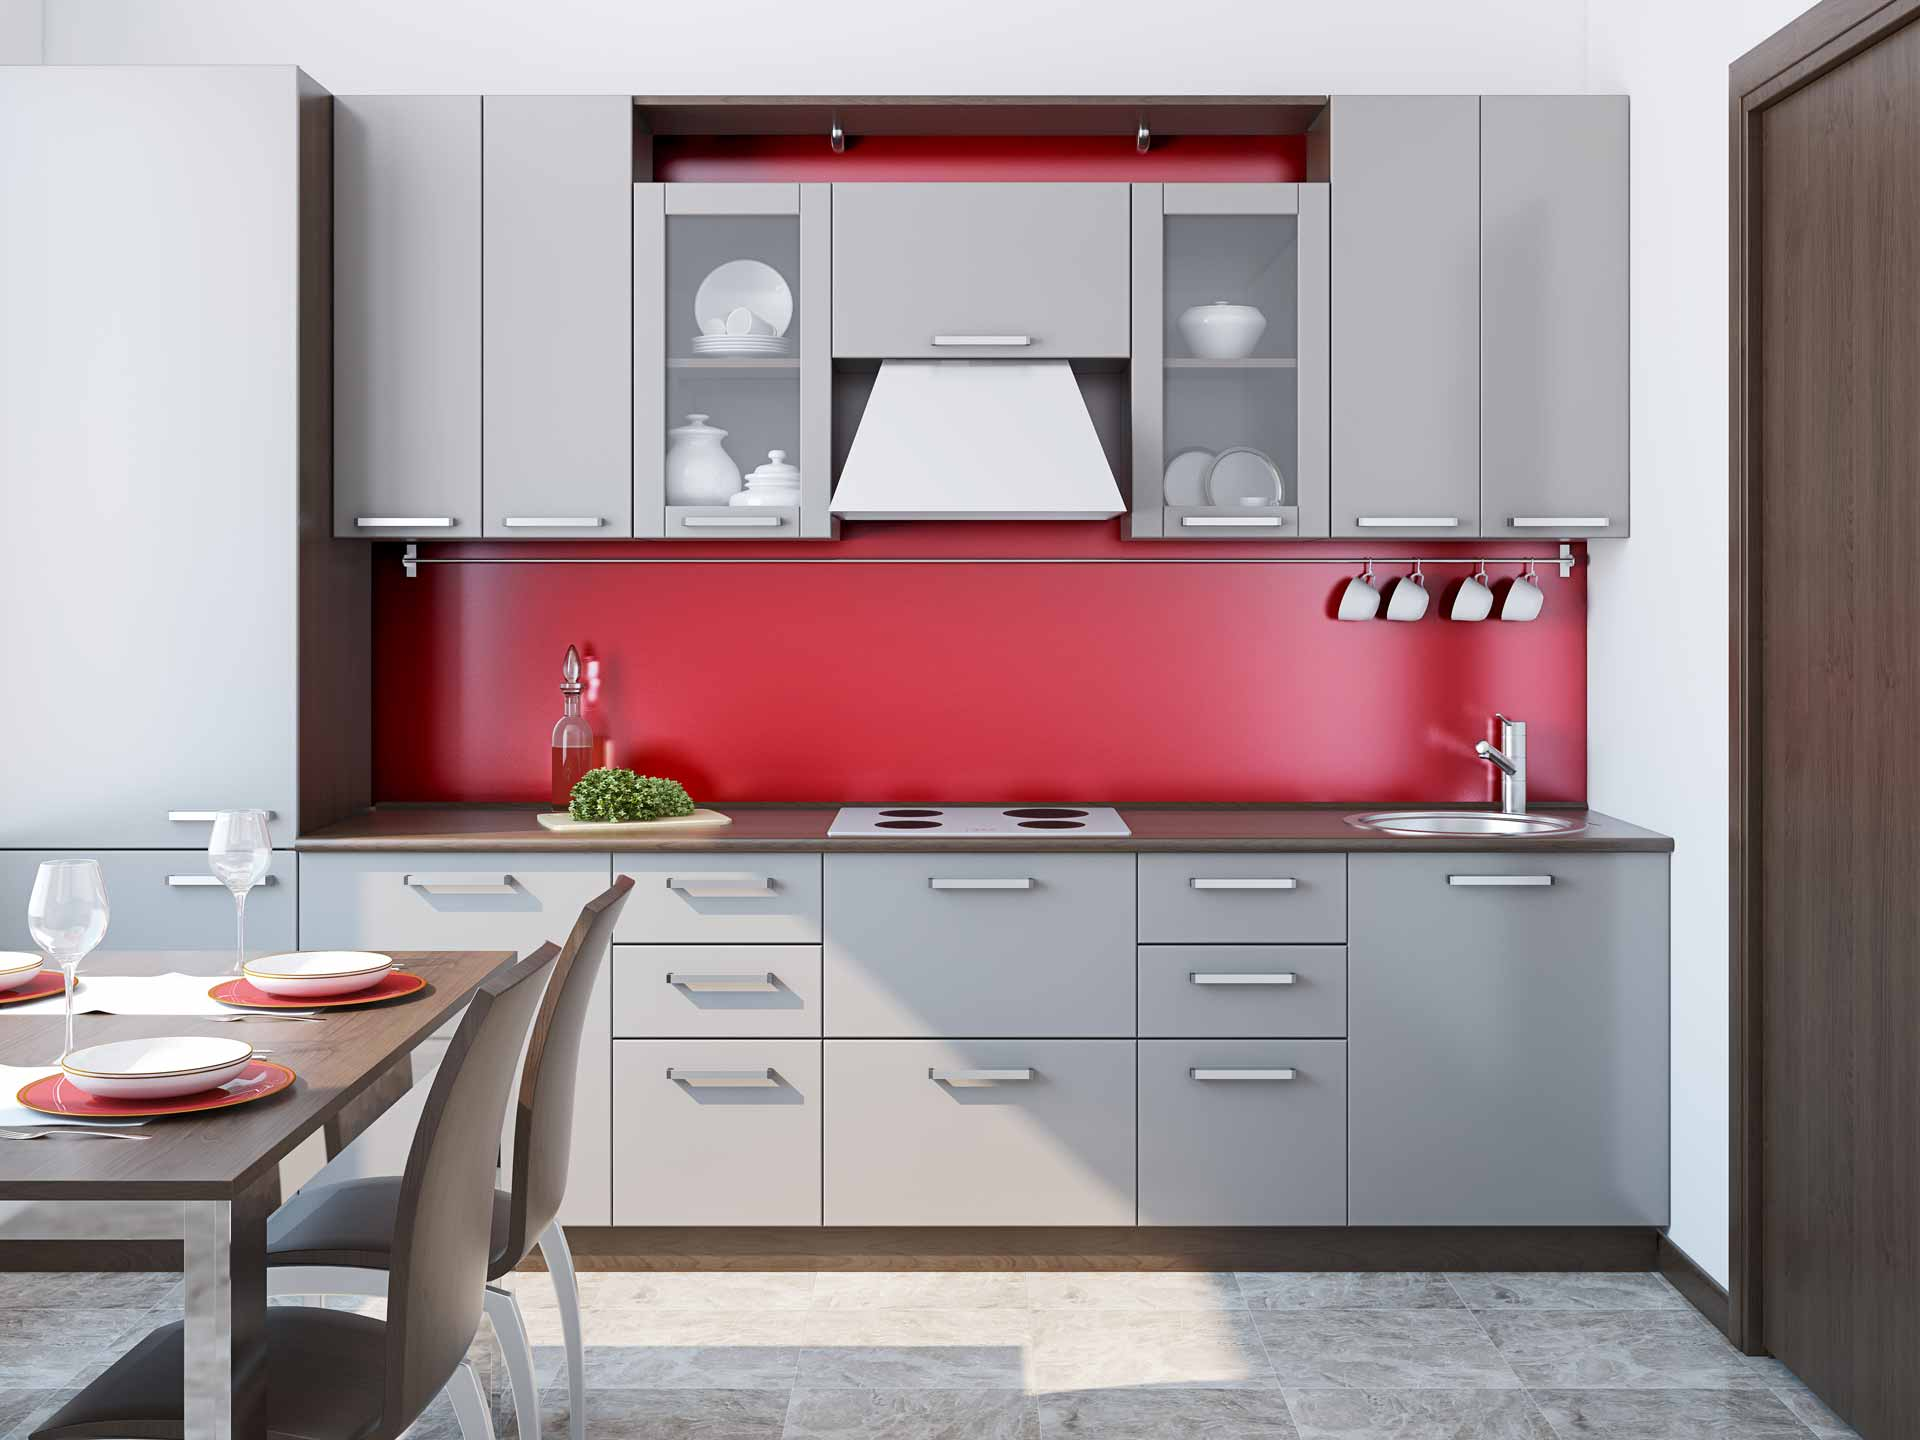 Red Matt kitchen splashback